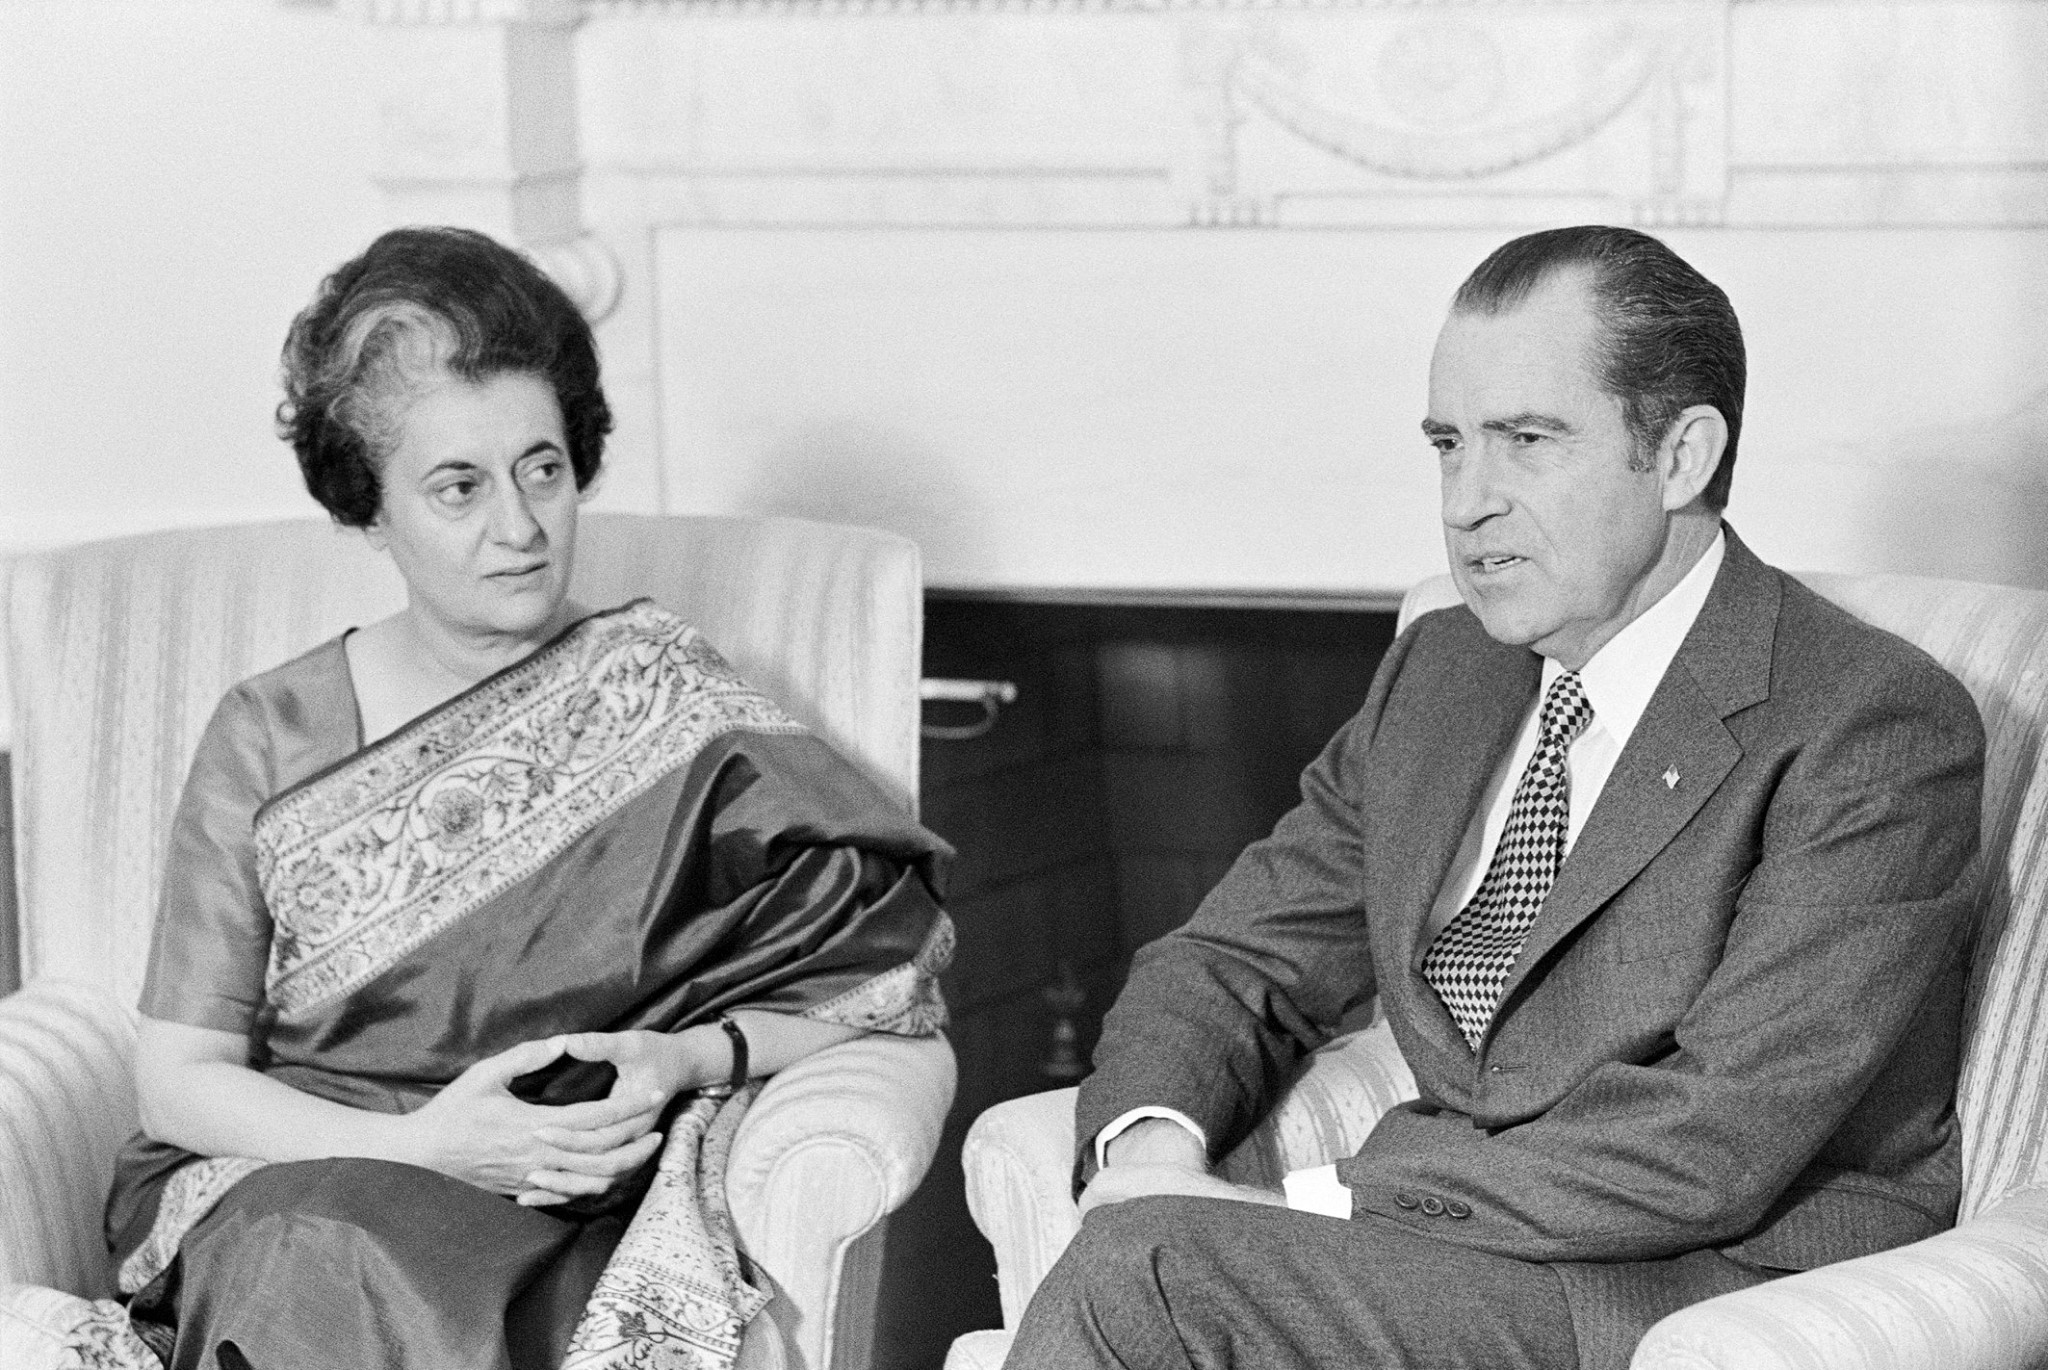 #WHOLEVILLAIN  WHOLEVILLAIN  WHOLE  VILLAIN  -  HISTORY  OF  THE  US-INDIA-TIBET  RELATIONS  :  INDIA'S  PRIME  MINISTER  MRS.  INDIRA  GANDHI  MADE  A  FUTILE  TRIP  TO  WASHINGTON  D.C.  ON  NOVEMBER  03,  1971  TO  GET  THE  US  SUPPORT  TO  STOP  GENOCIDE  IN  EAST  PAKISTAN .